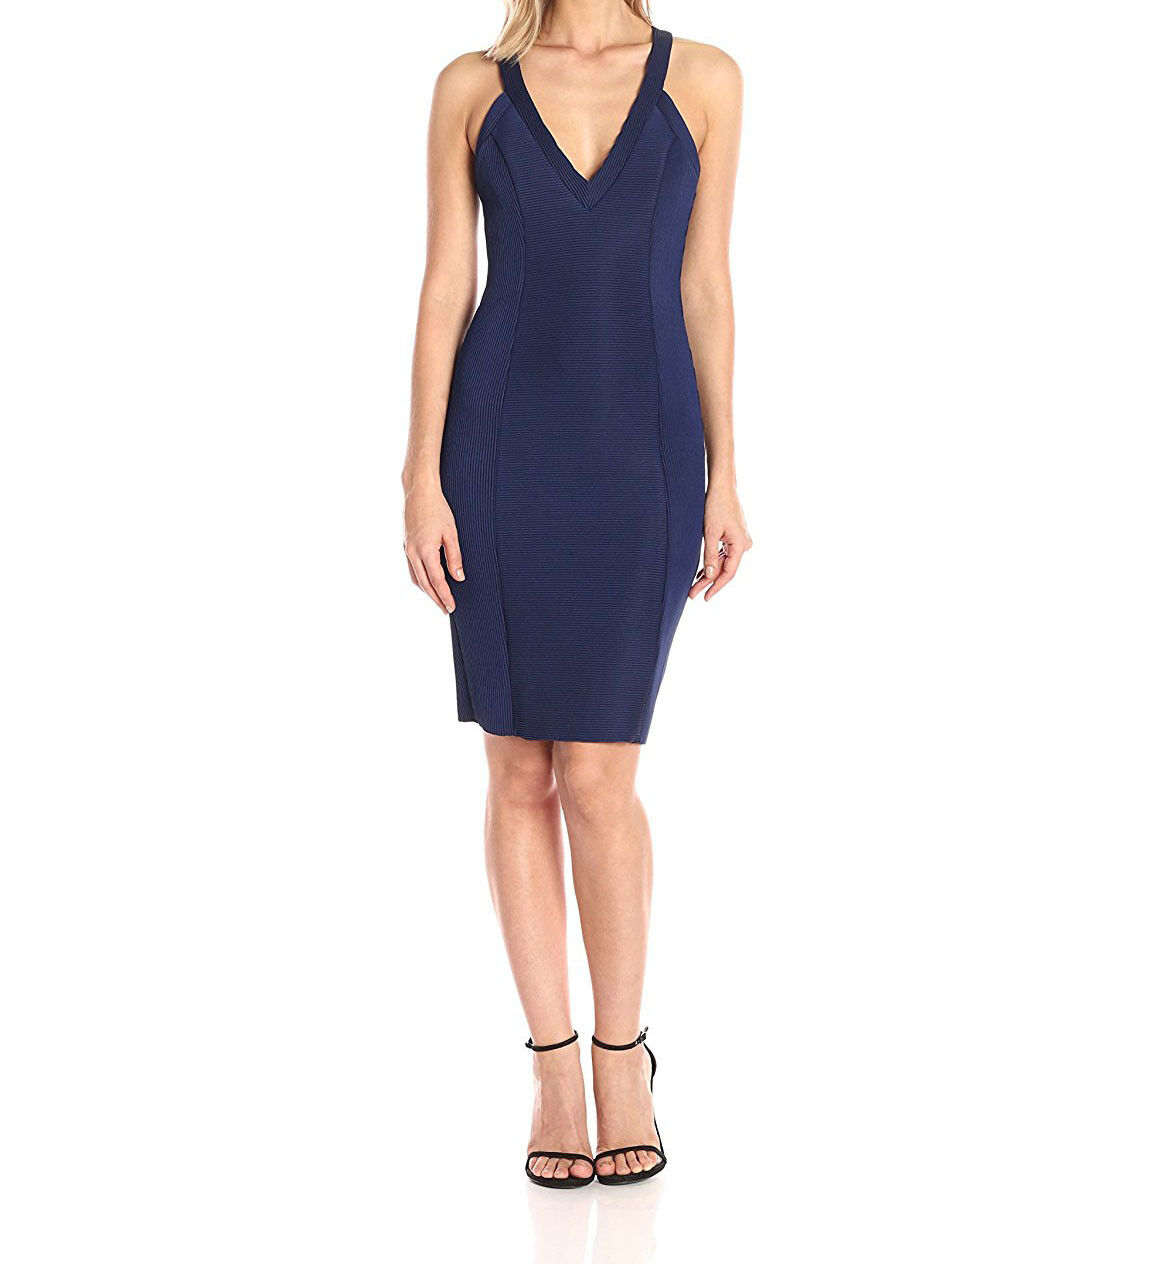 Guess Womens bluee Ribbed Sleeveless Bodycon Party Dress 10